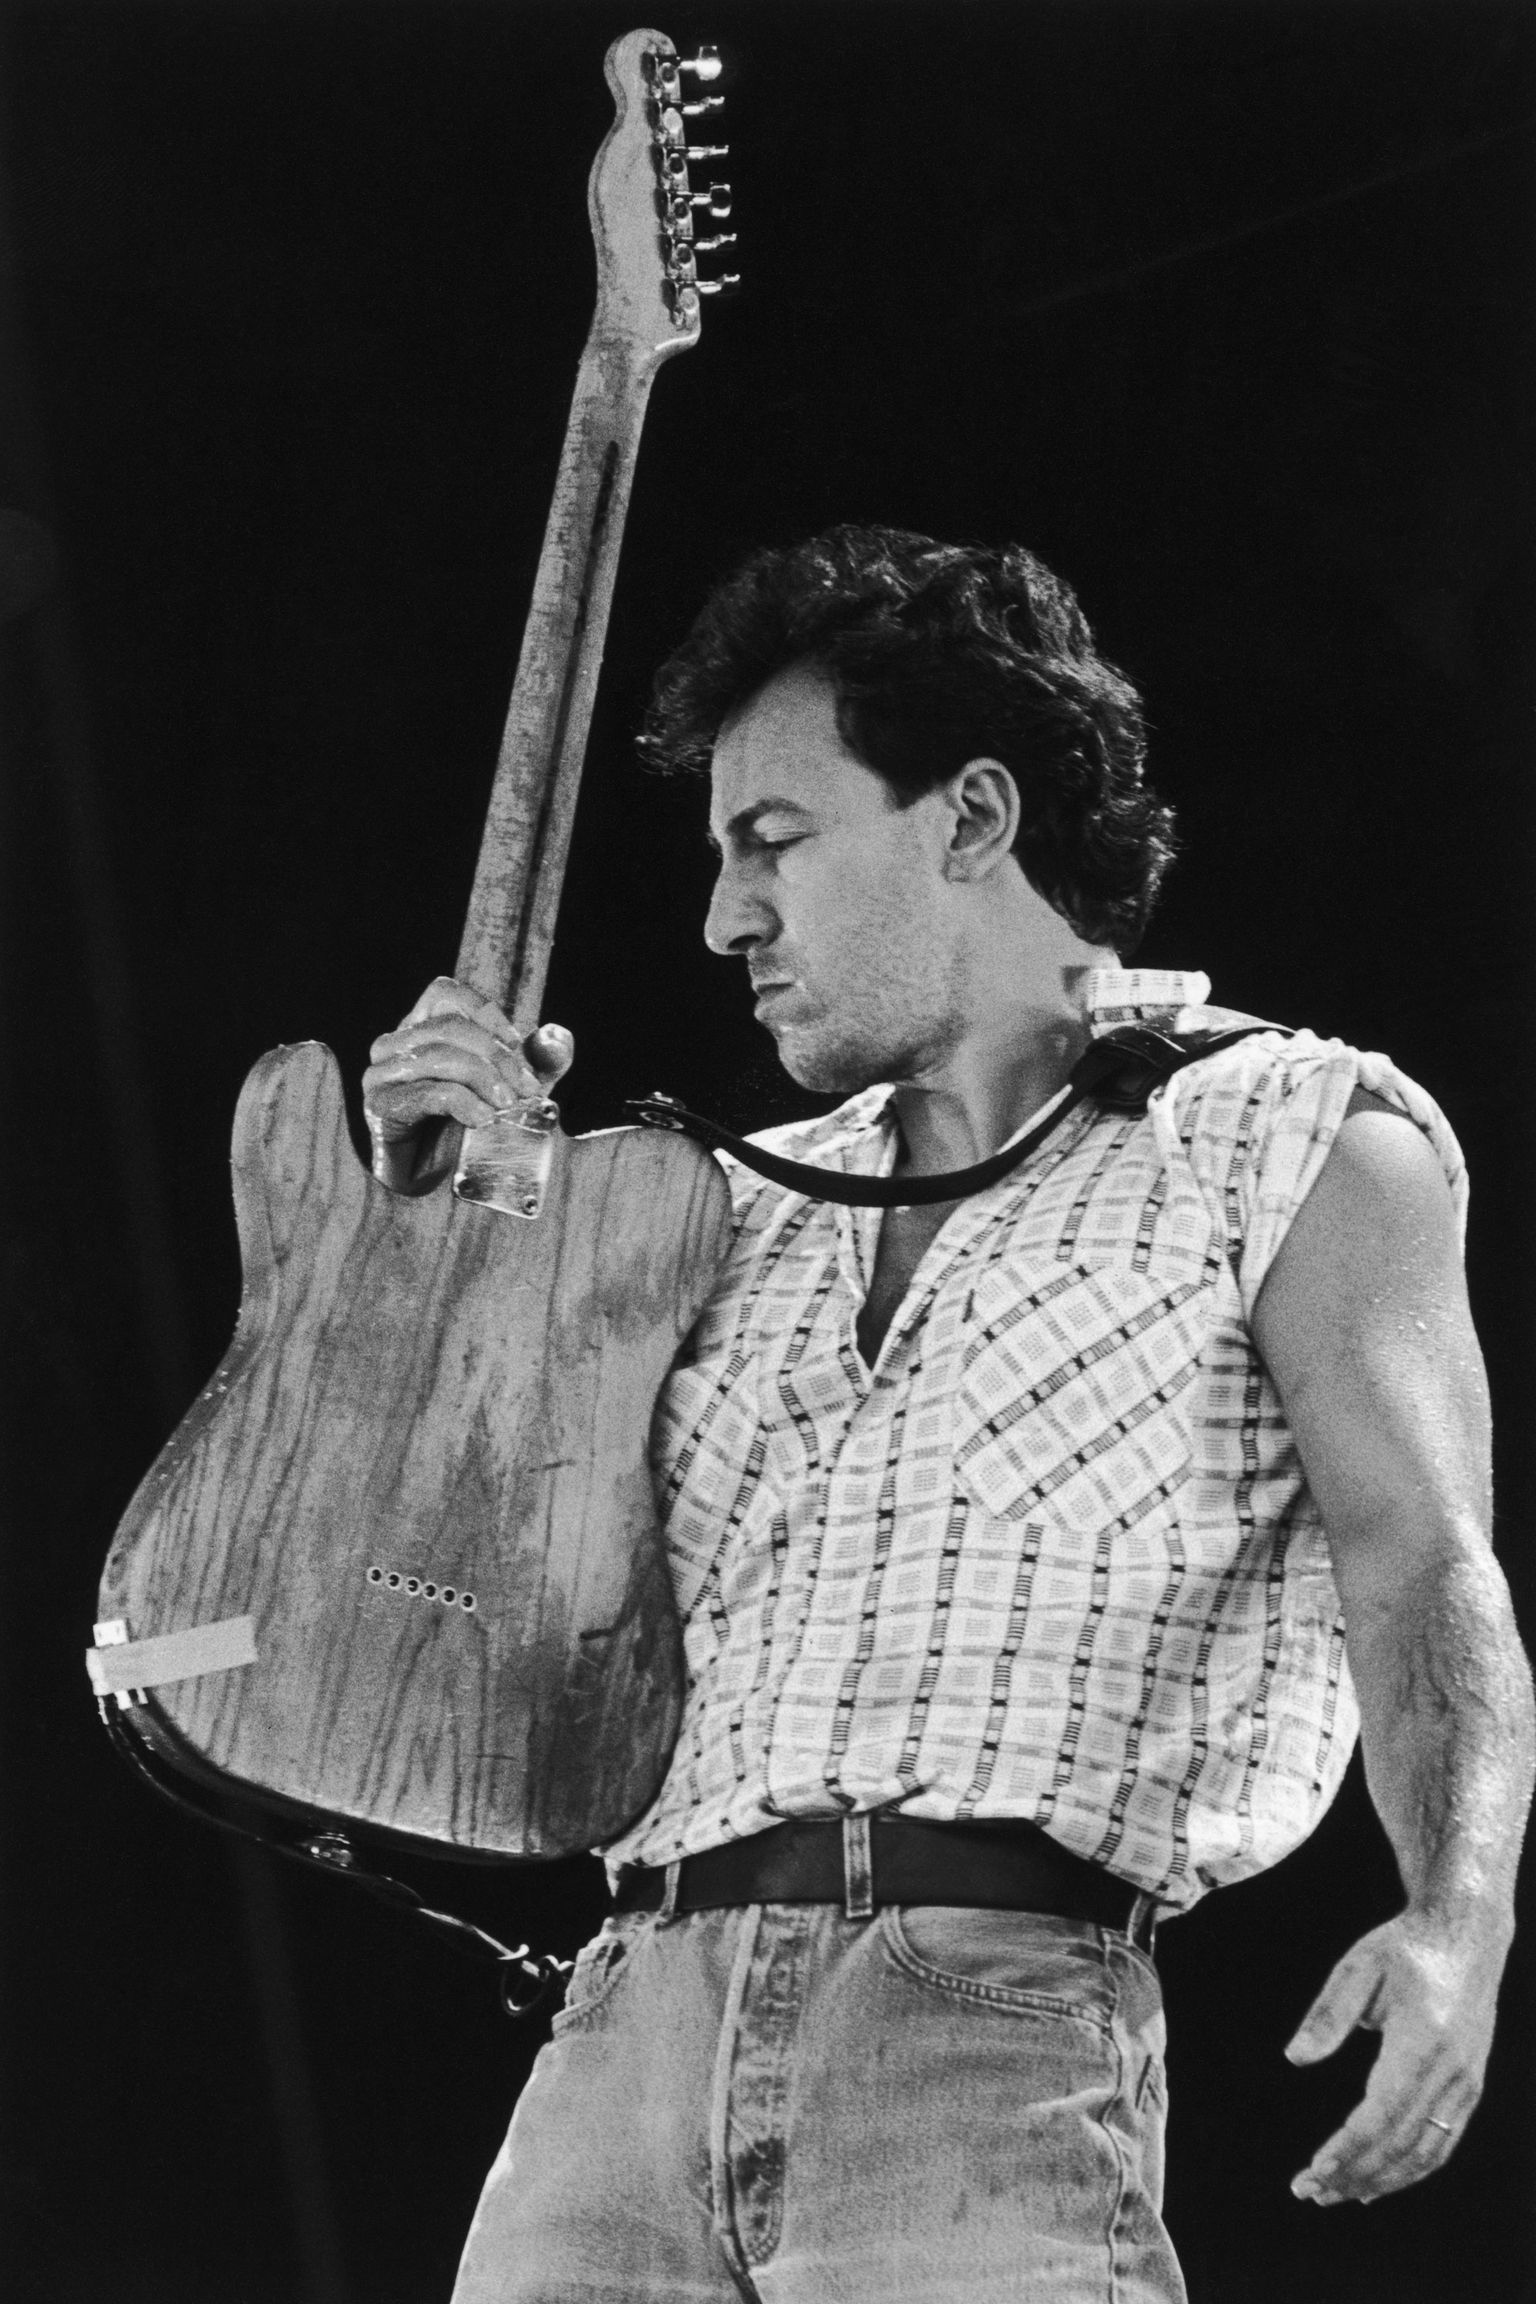 Just 50 Horny Photos of Bruce Springsteen